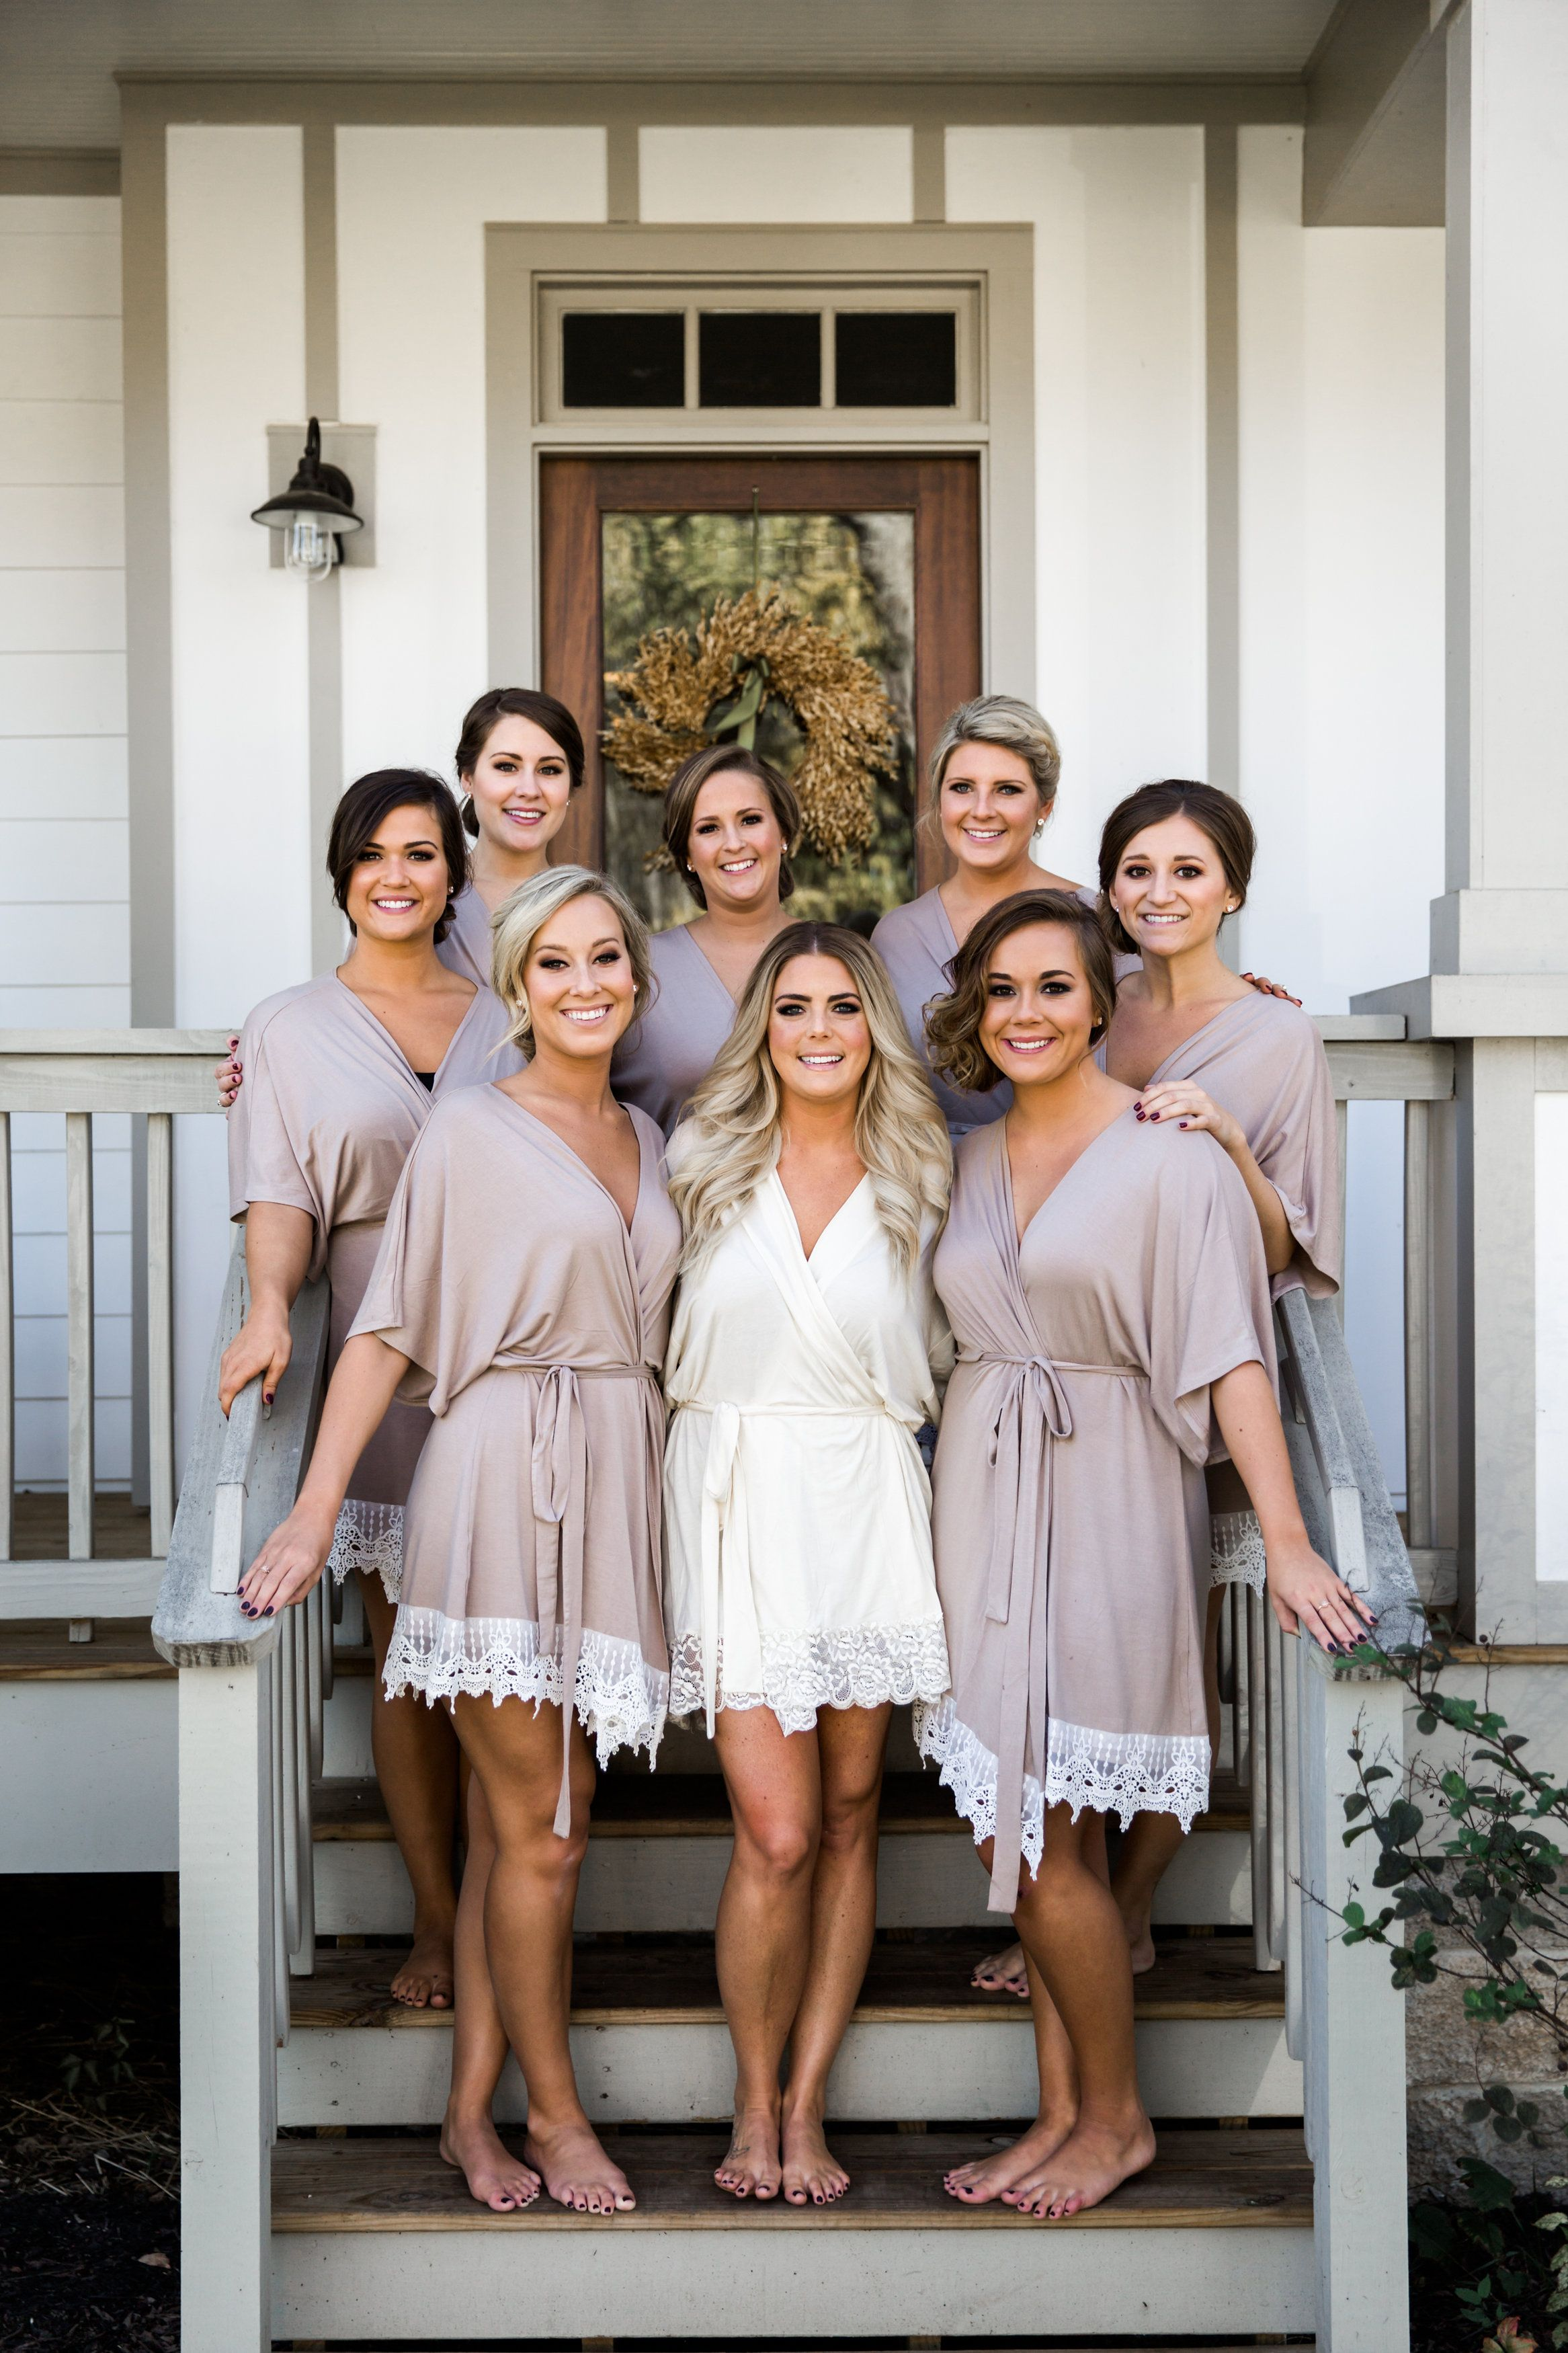 Bride and bridesmaids in matching robes getting ready for